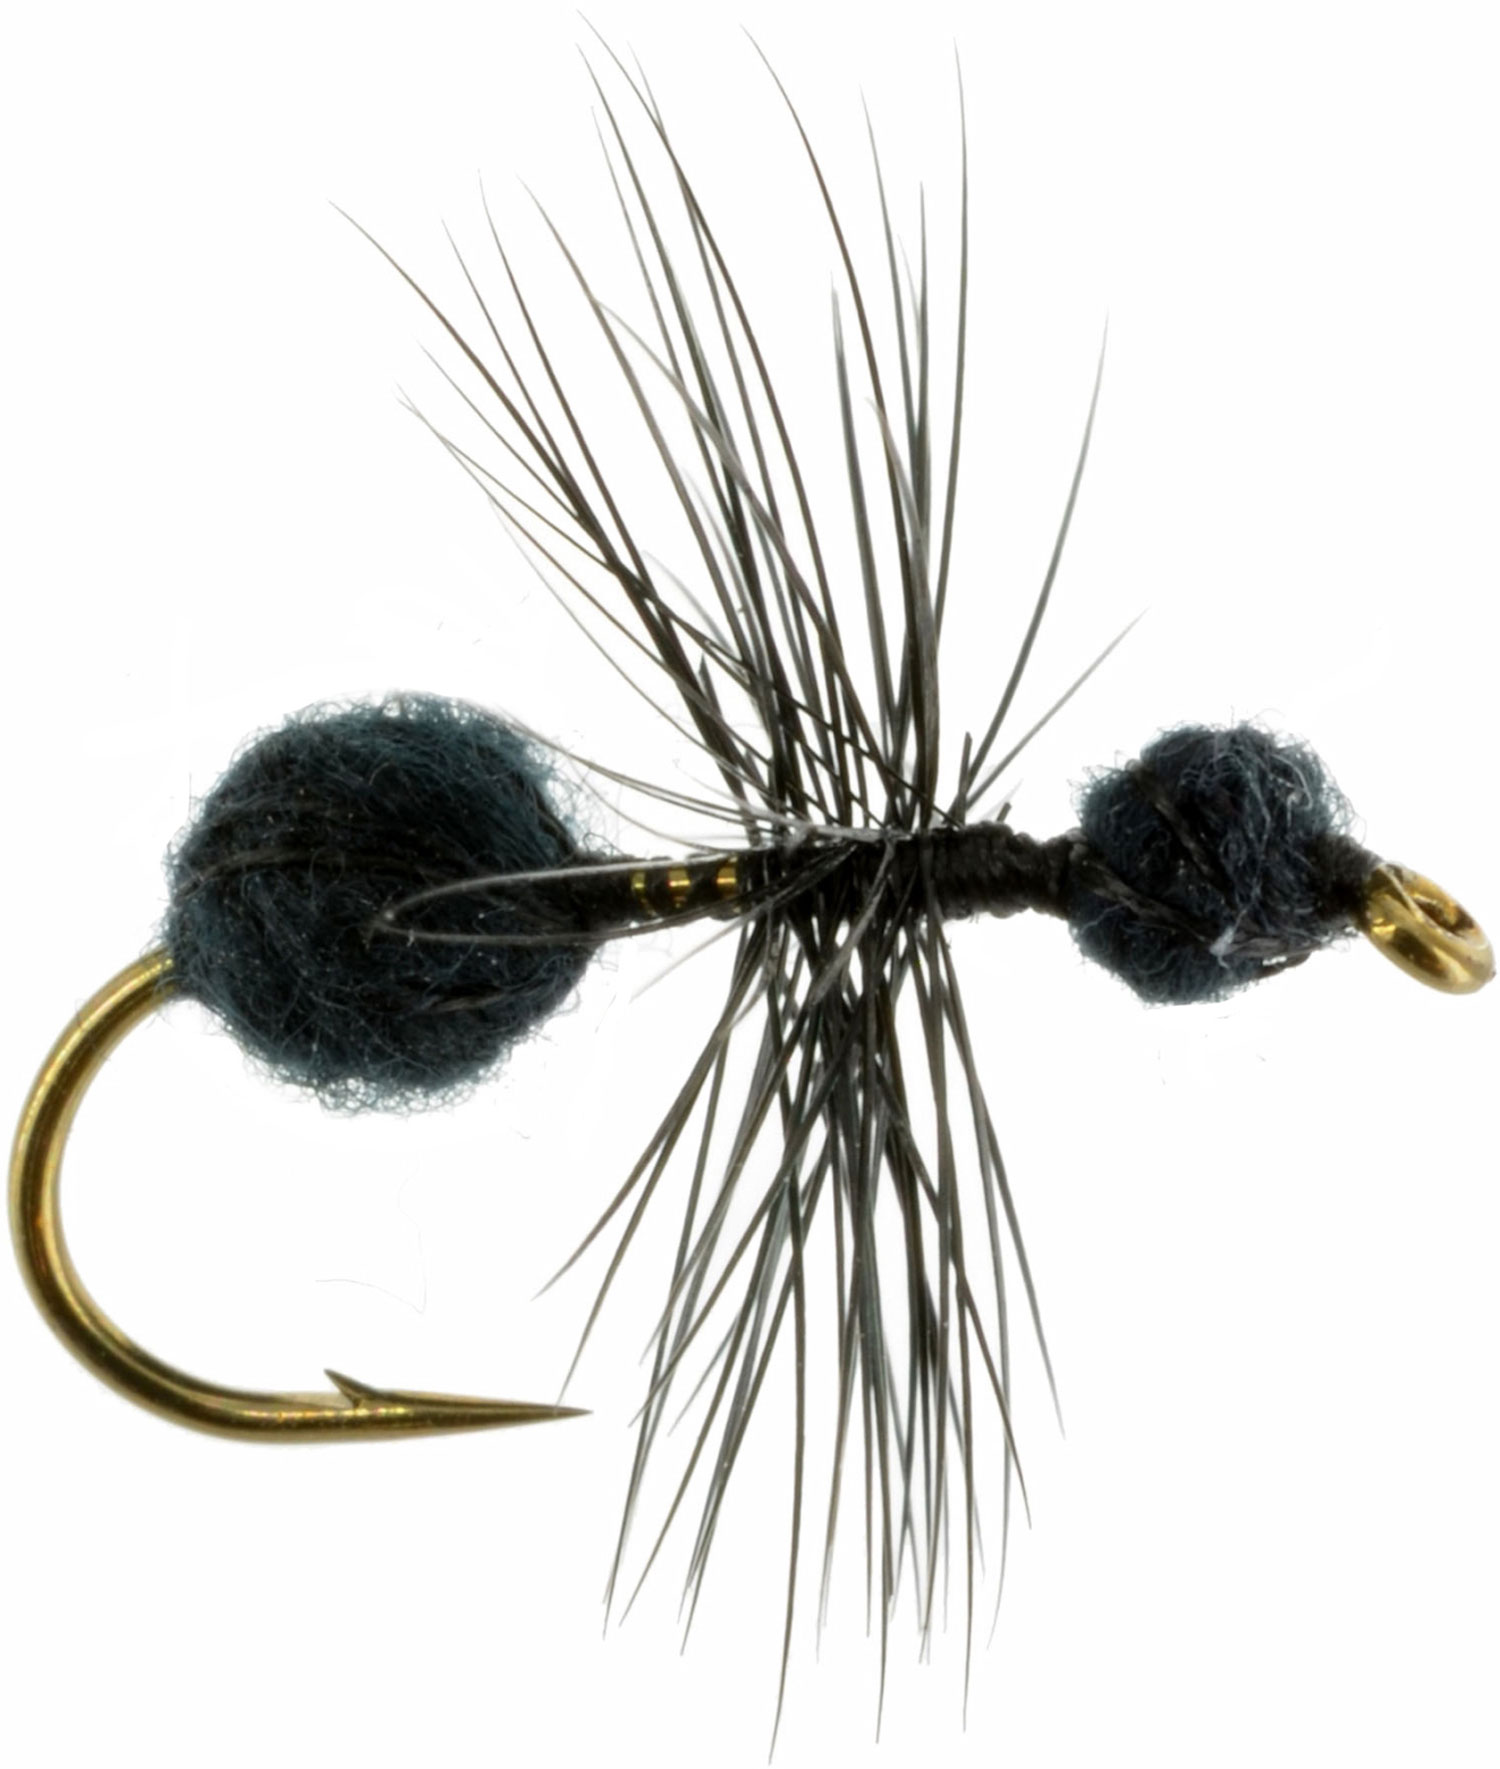 Wholesale Fly Fishing Flies: Panfish Flies & Poppers : Top Fly Fishing Flies & Gear At